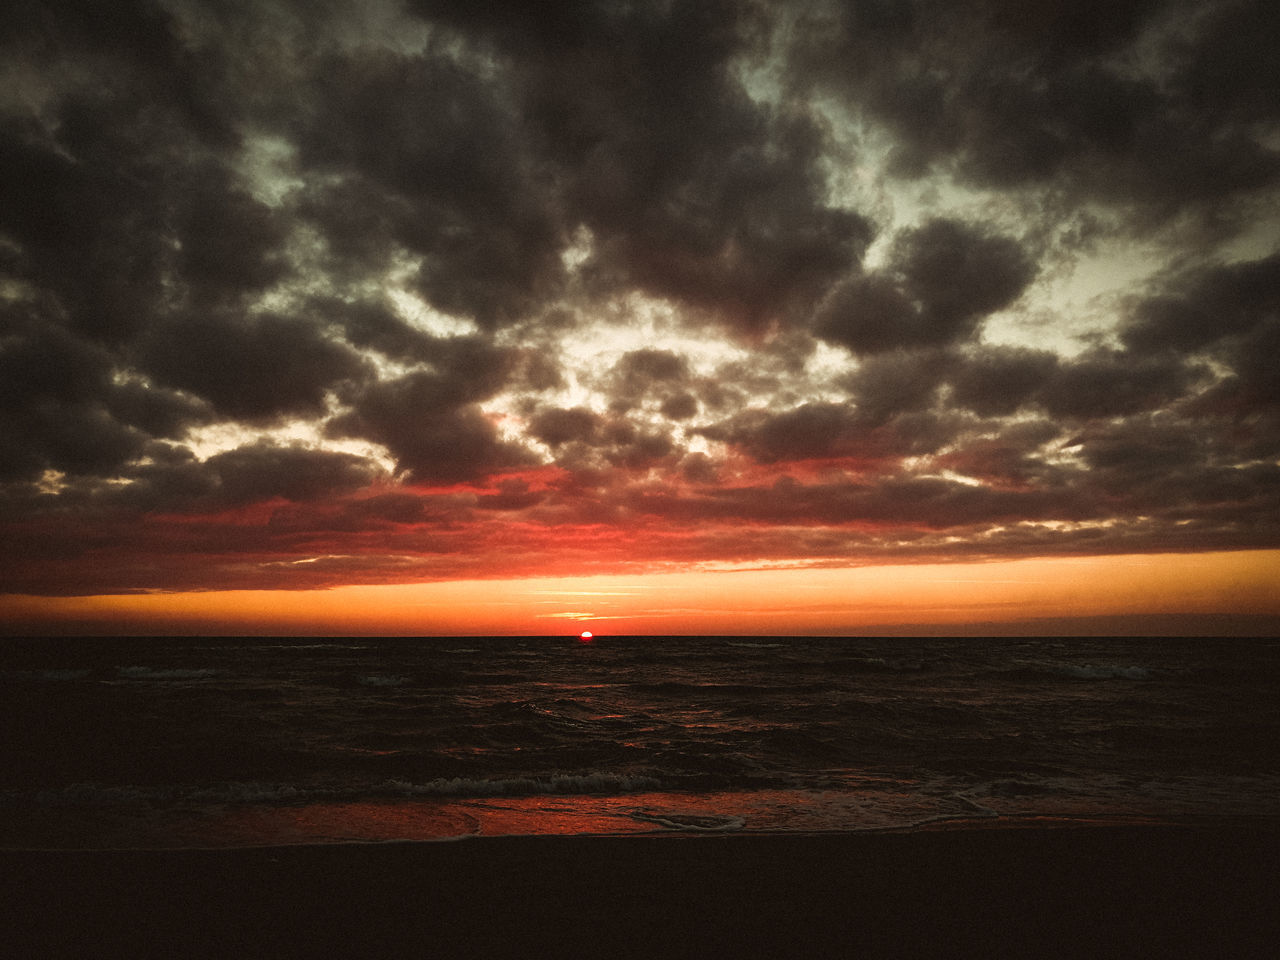 sun is gone. Awe Beach Beauty In Nature Cloud - Sky Dramatic Sky Horizon Over Water Idyllic Nature No People Outdoors Scenics Sea Sky Sunset Tranquil Scene Tranquility Water